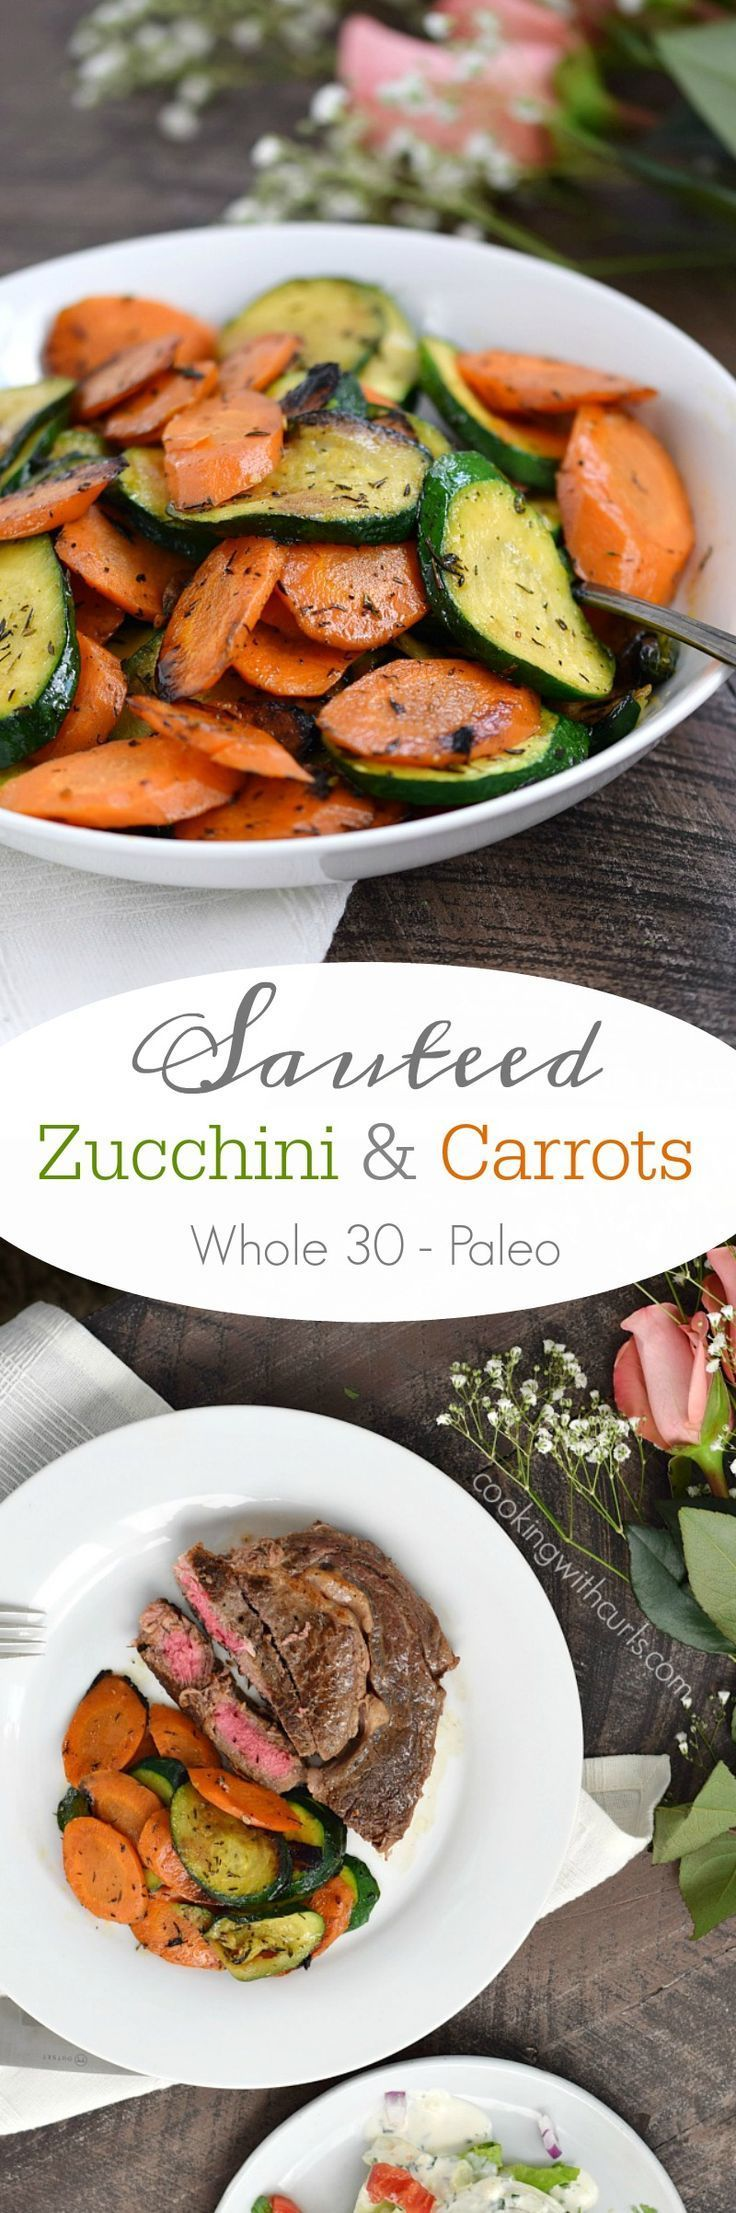 These Sauteed Zucchini and Carrots are super easy to prepare, and make the perfect side dish along side seafood, steaks, and chicken | http://cookingwithcurls.com